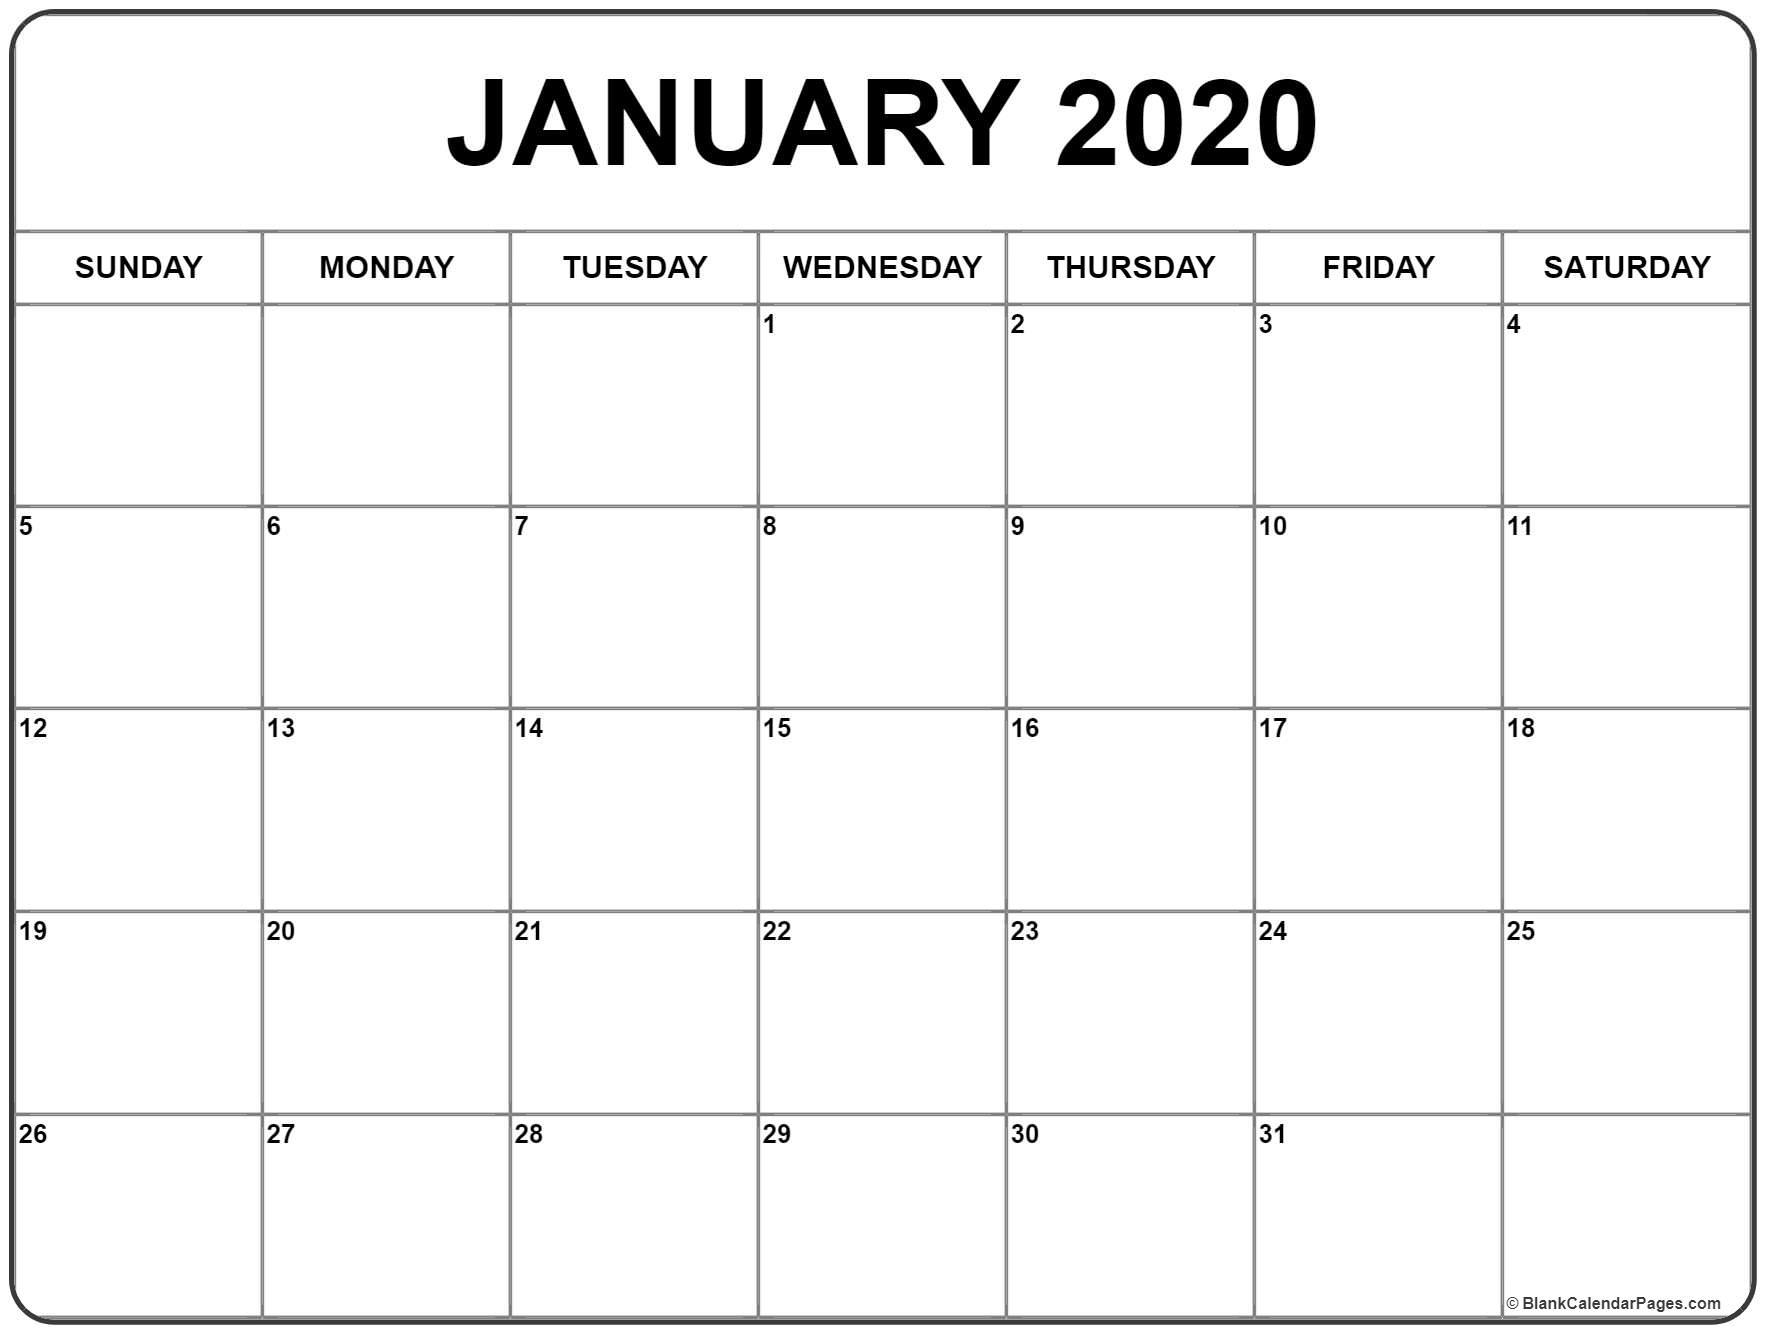 January 2020 Calendar | Free Printable Monthly Calendars Incredible Free Printable Calendar January 2020